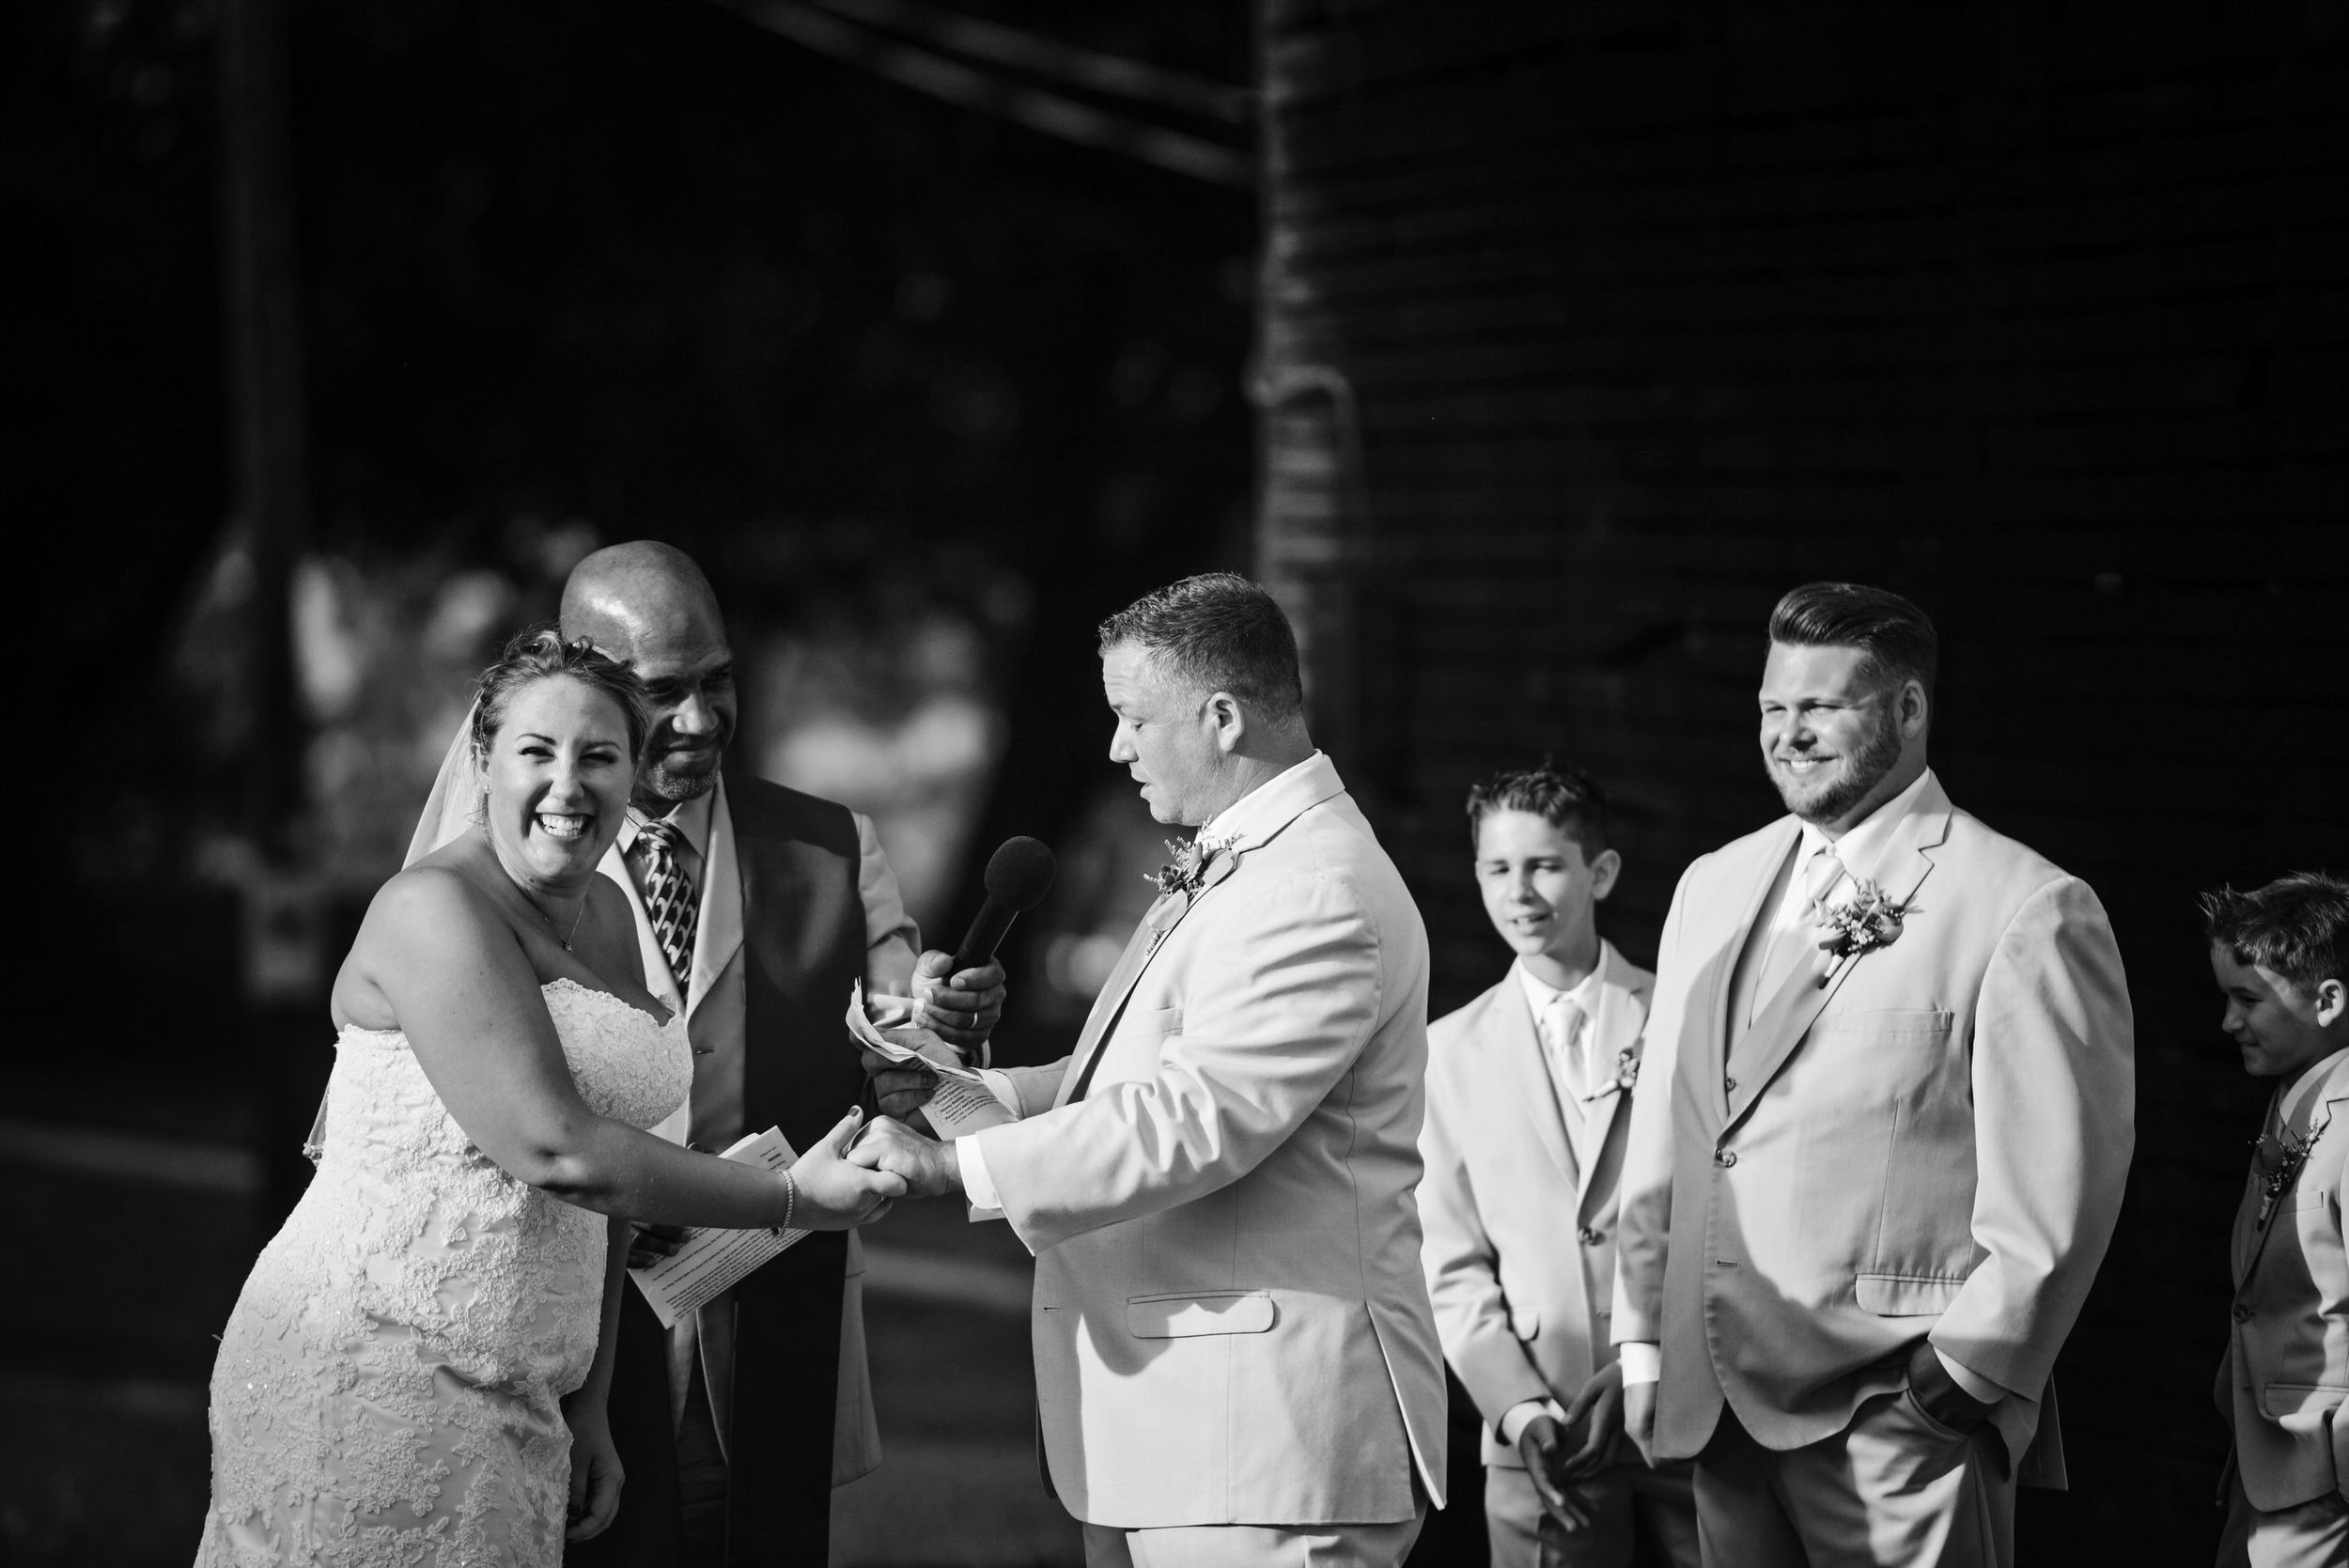 LiganoreWineryWedding-Amber&Andy-Ceremony-60.jpg